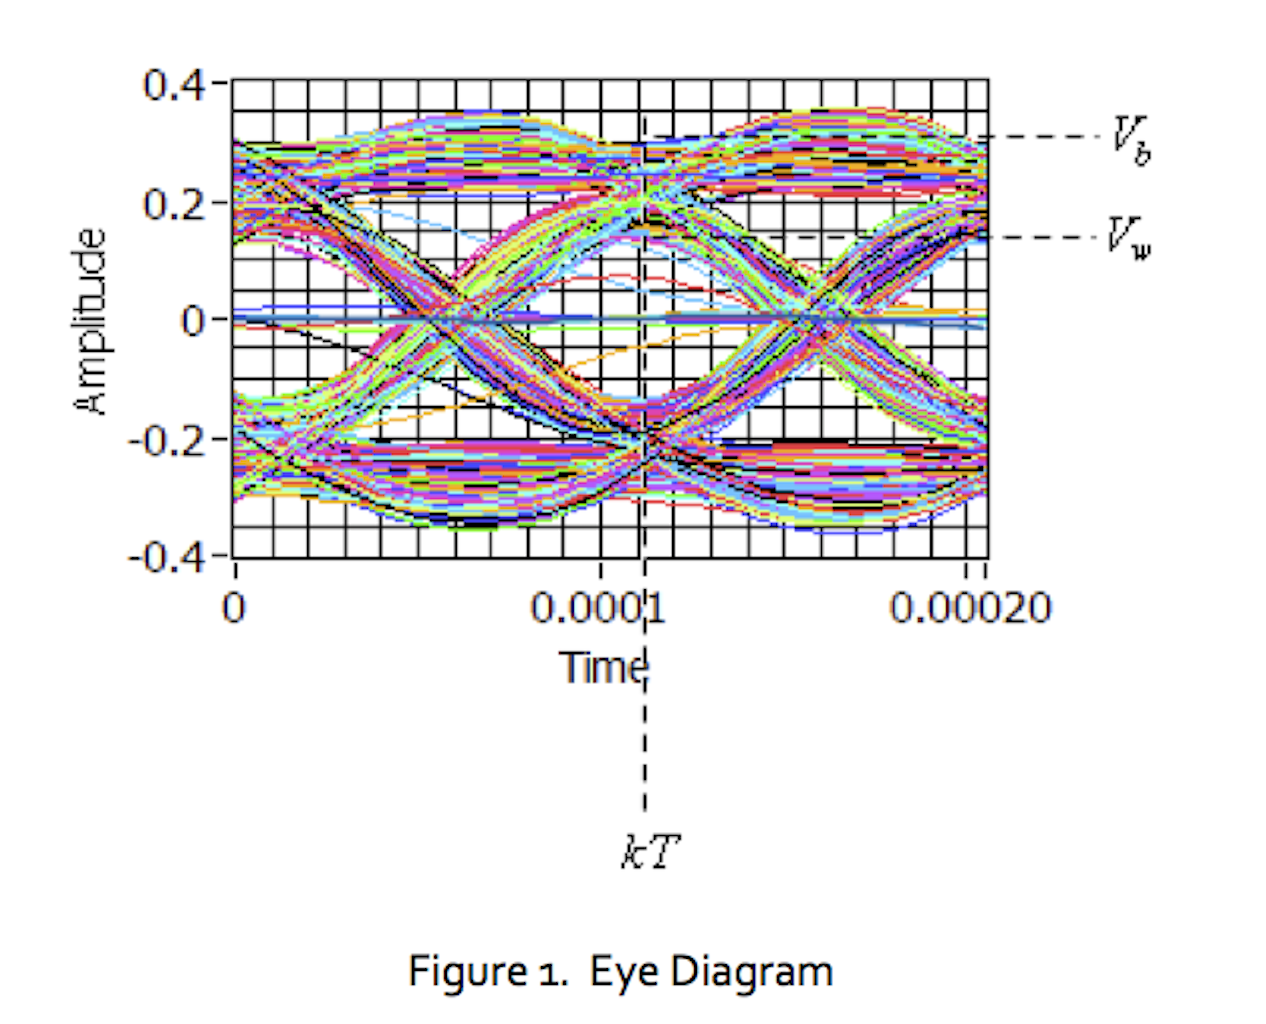 Lab 10 the eye diagram national instruments in this lab project students will examine how the eye diagram changes when intersymbol interference isi is present in the communication channel ccuart Image collections